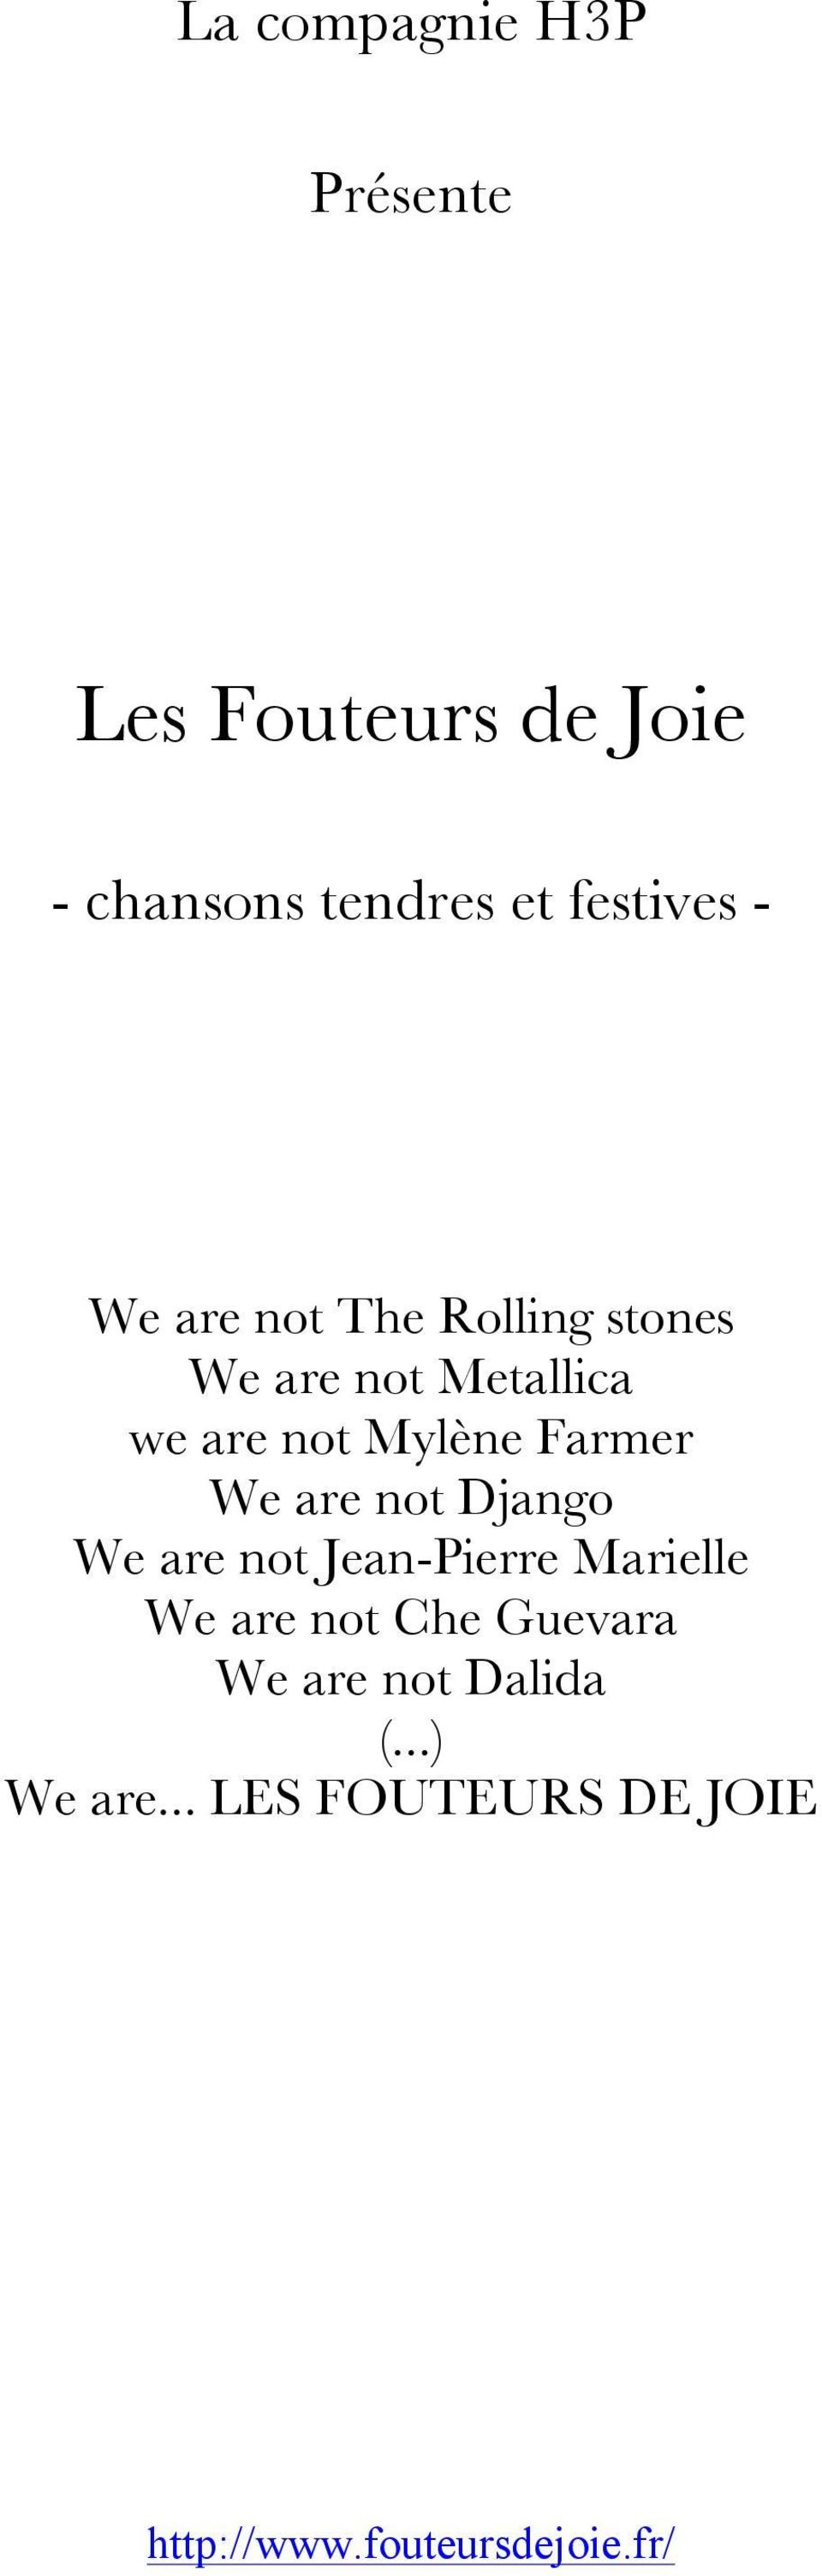 We are not Django We are not Jean-Pierre Marielle We are not Che Guevara We